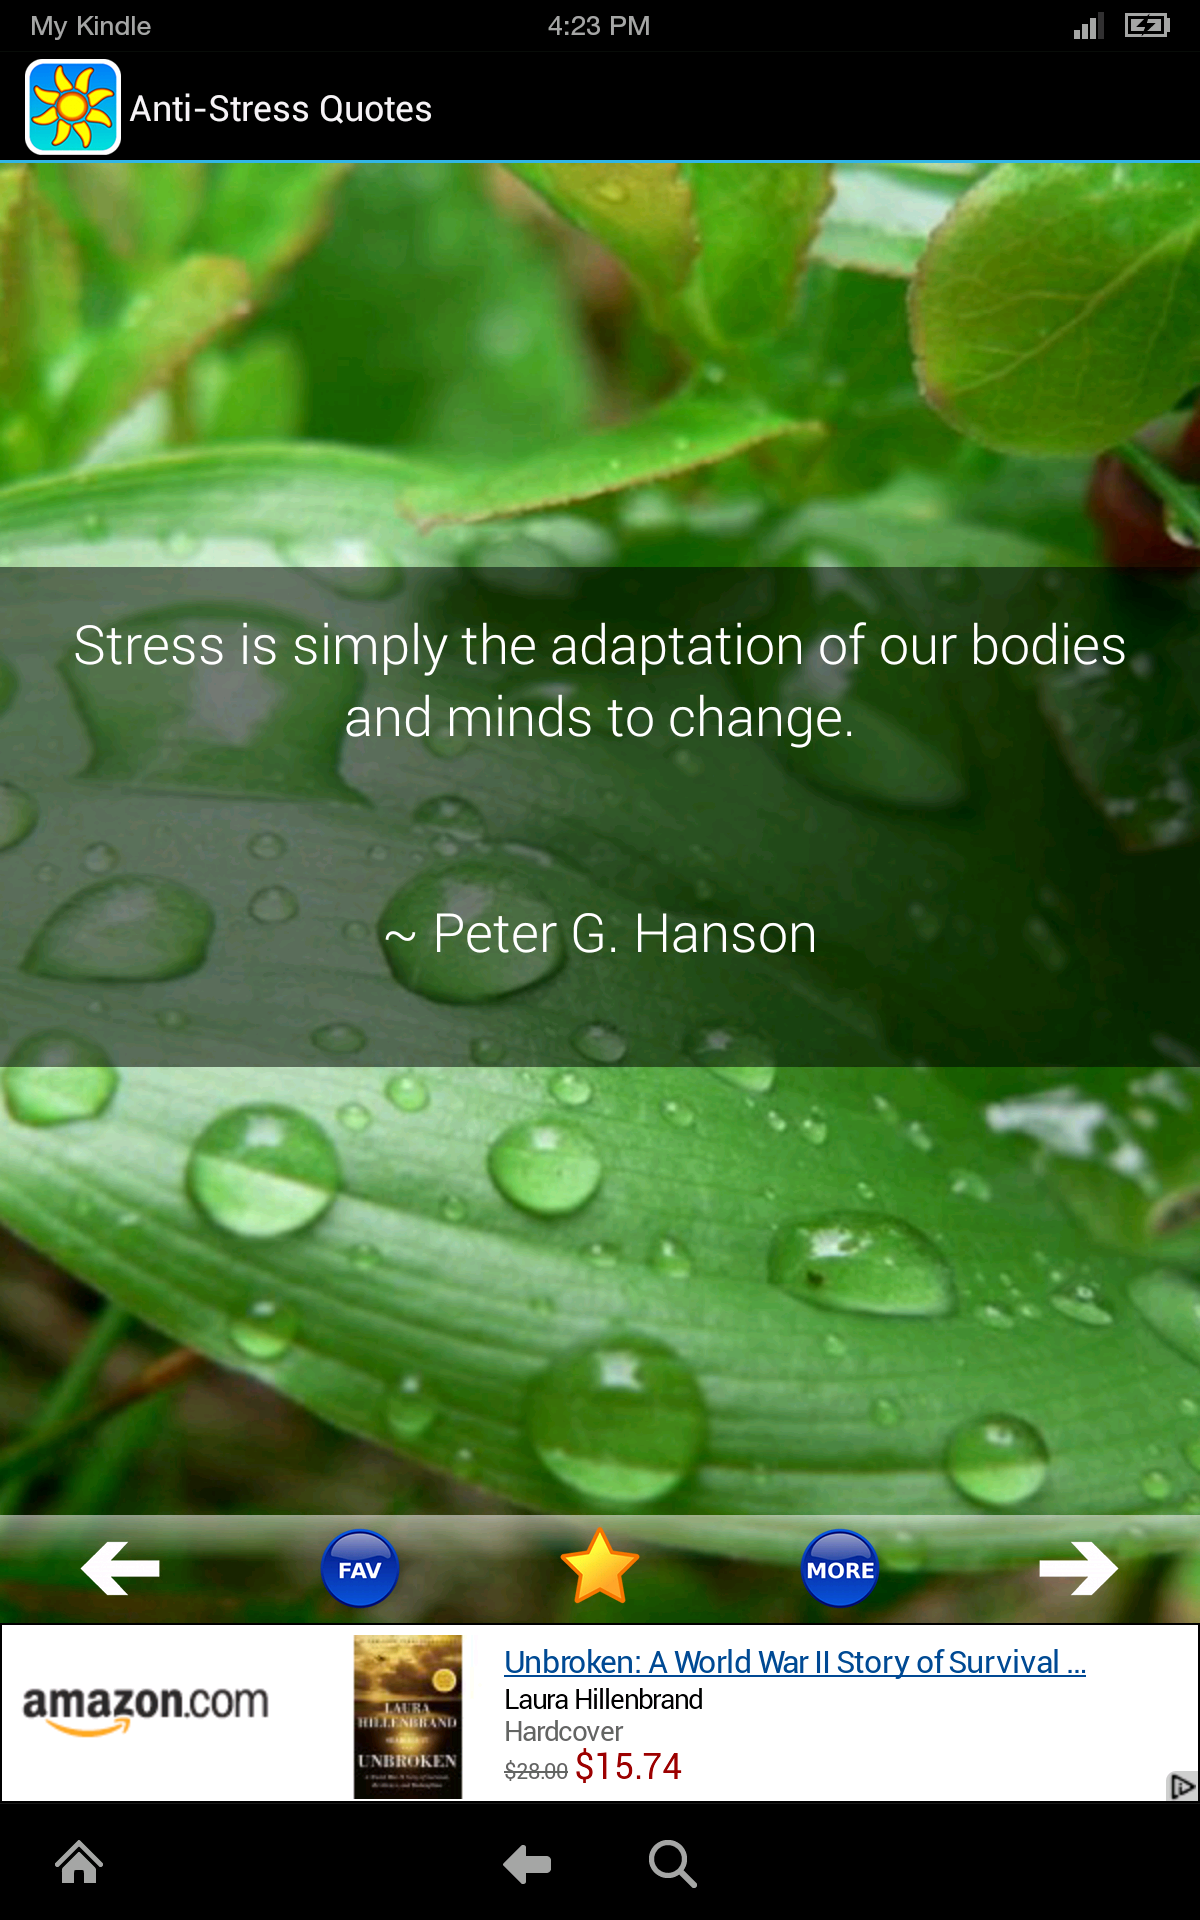 Anti-Stress Quotes: Self Help Stress Relief, Anger Management, Anxiety  Reduction, Worry Reliever, and Relaxation Tracker!